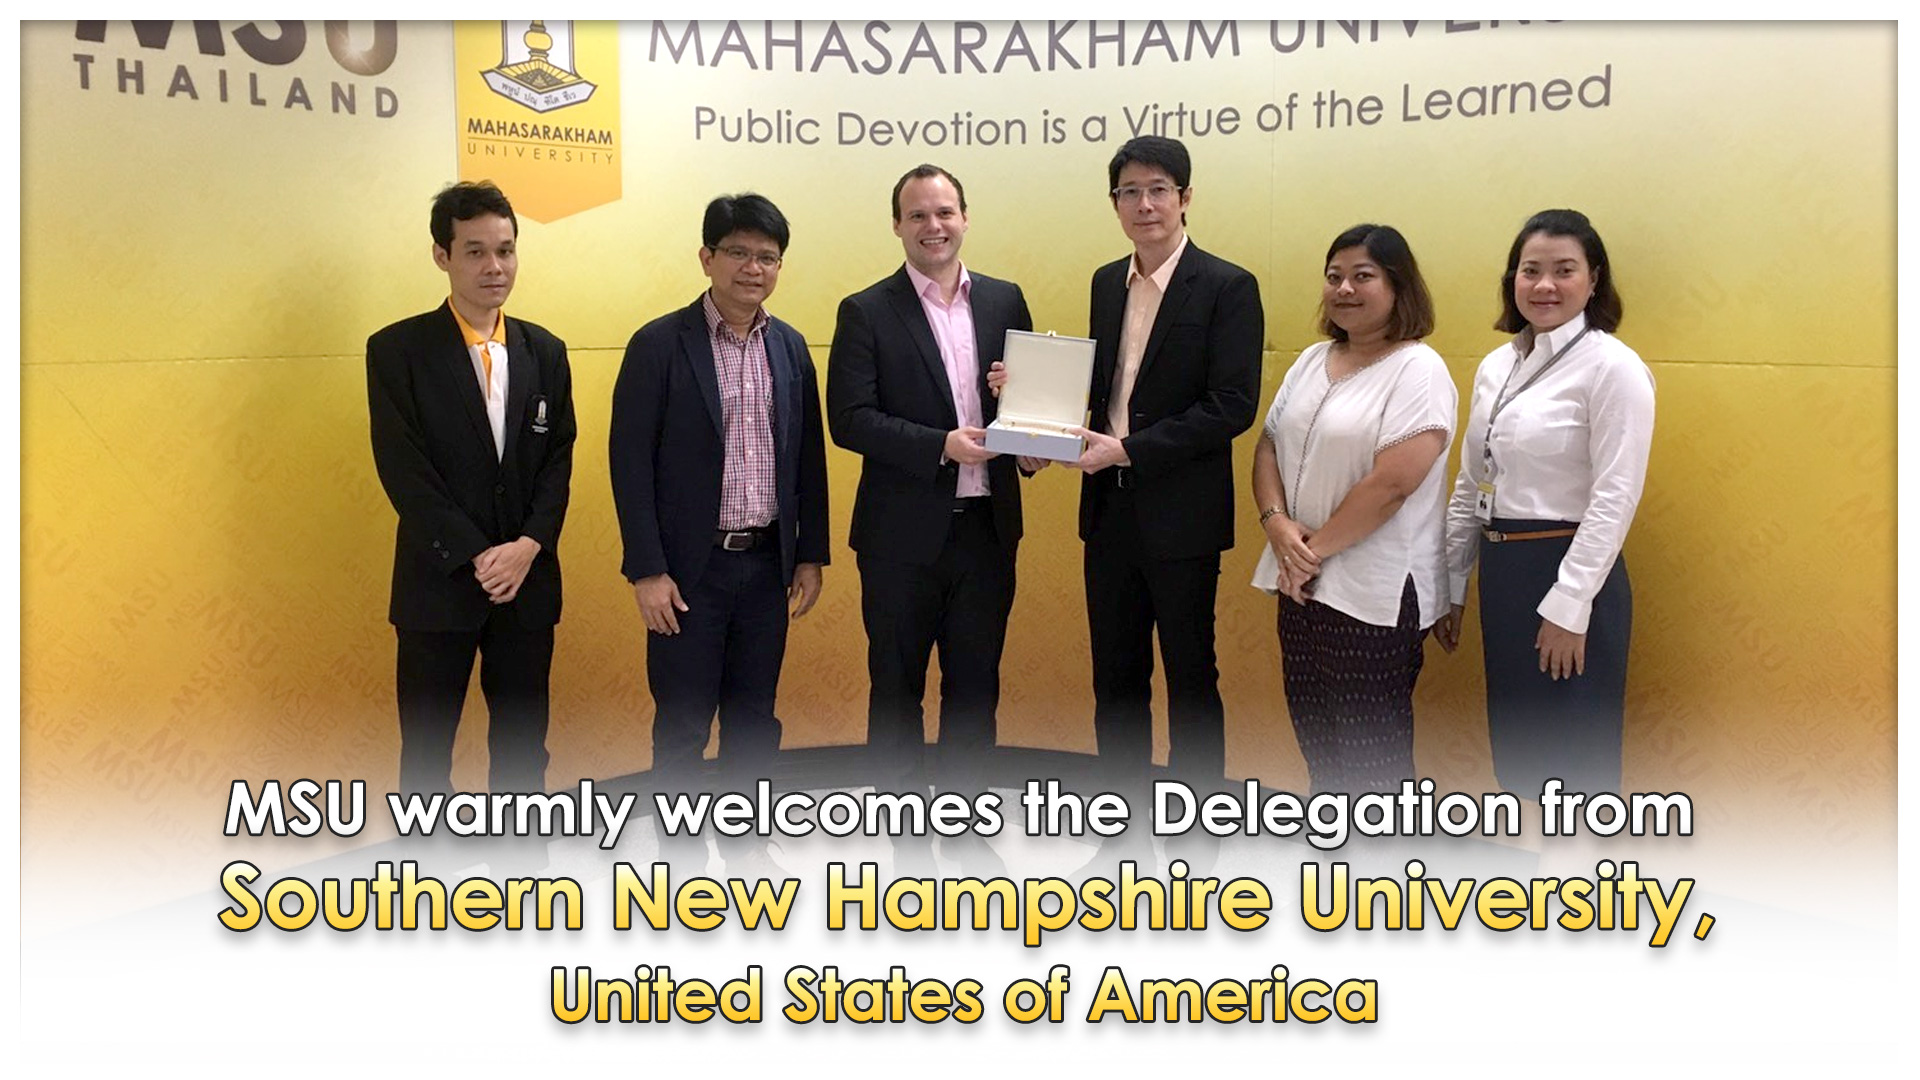 MSU warmly welcomes the Delegation from Southern New Hampshire University, United States of America